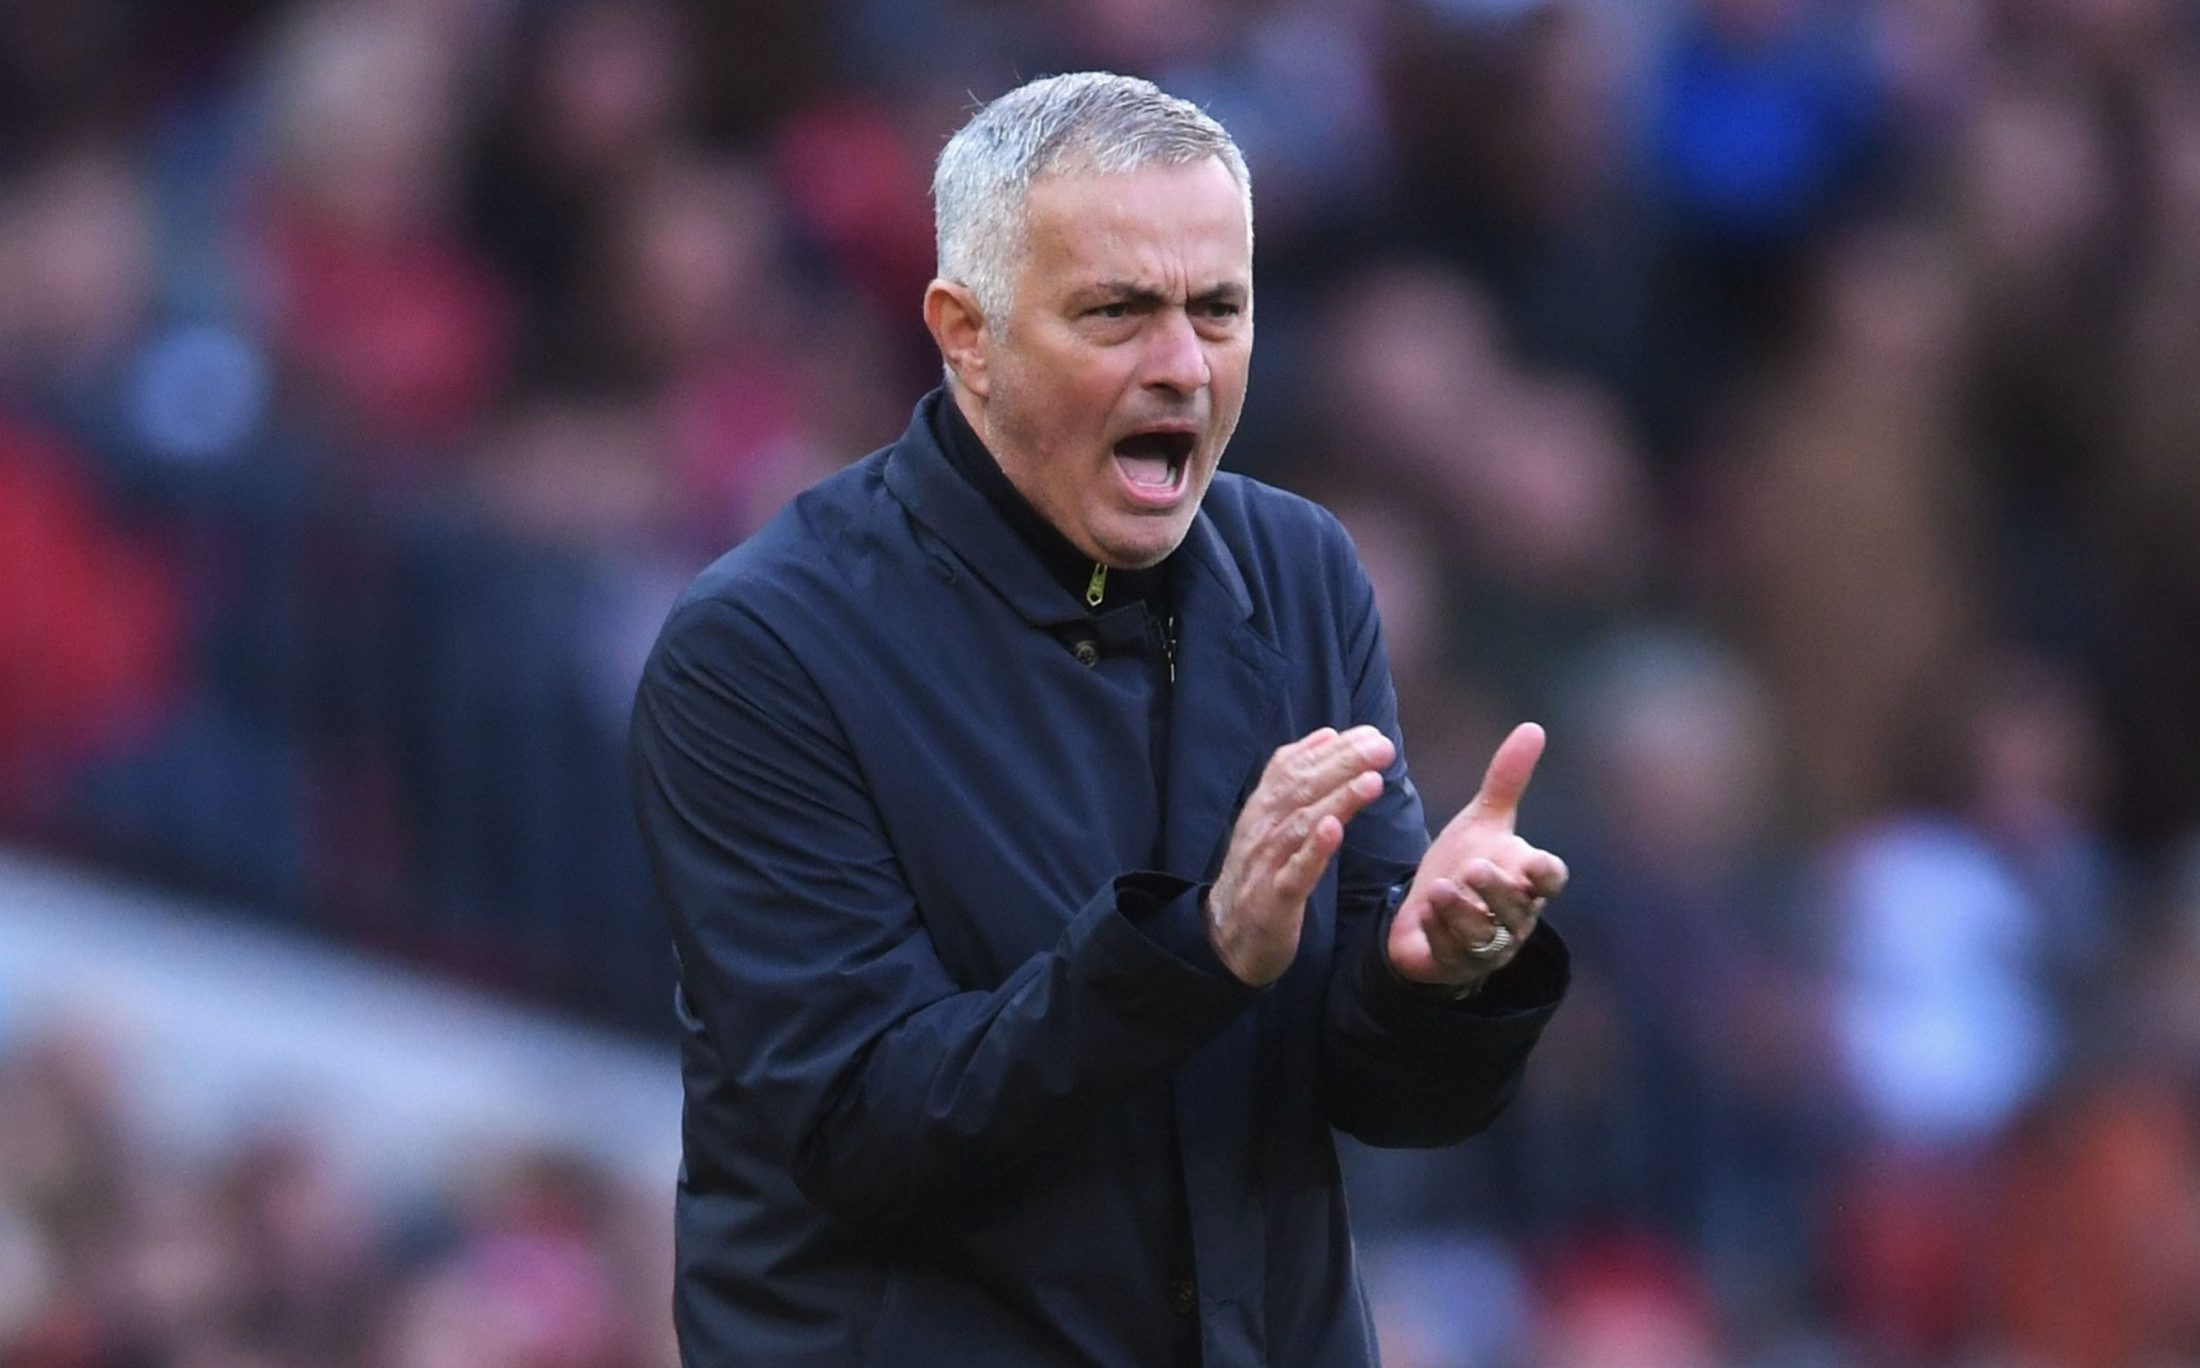 MANCHESTER, ENGLAND - OCTOBER 06: Jose Mourinho, Manager of Manchester United gives his team instructions during the Premier League match between Manchester United and Newcastle United at Old Trafford on October 6, 2018 in Manchester, United Kingdom. (Photo by Laurence Griffiths/Getty Images)